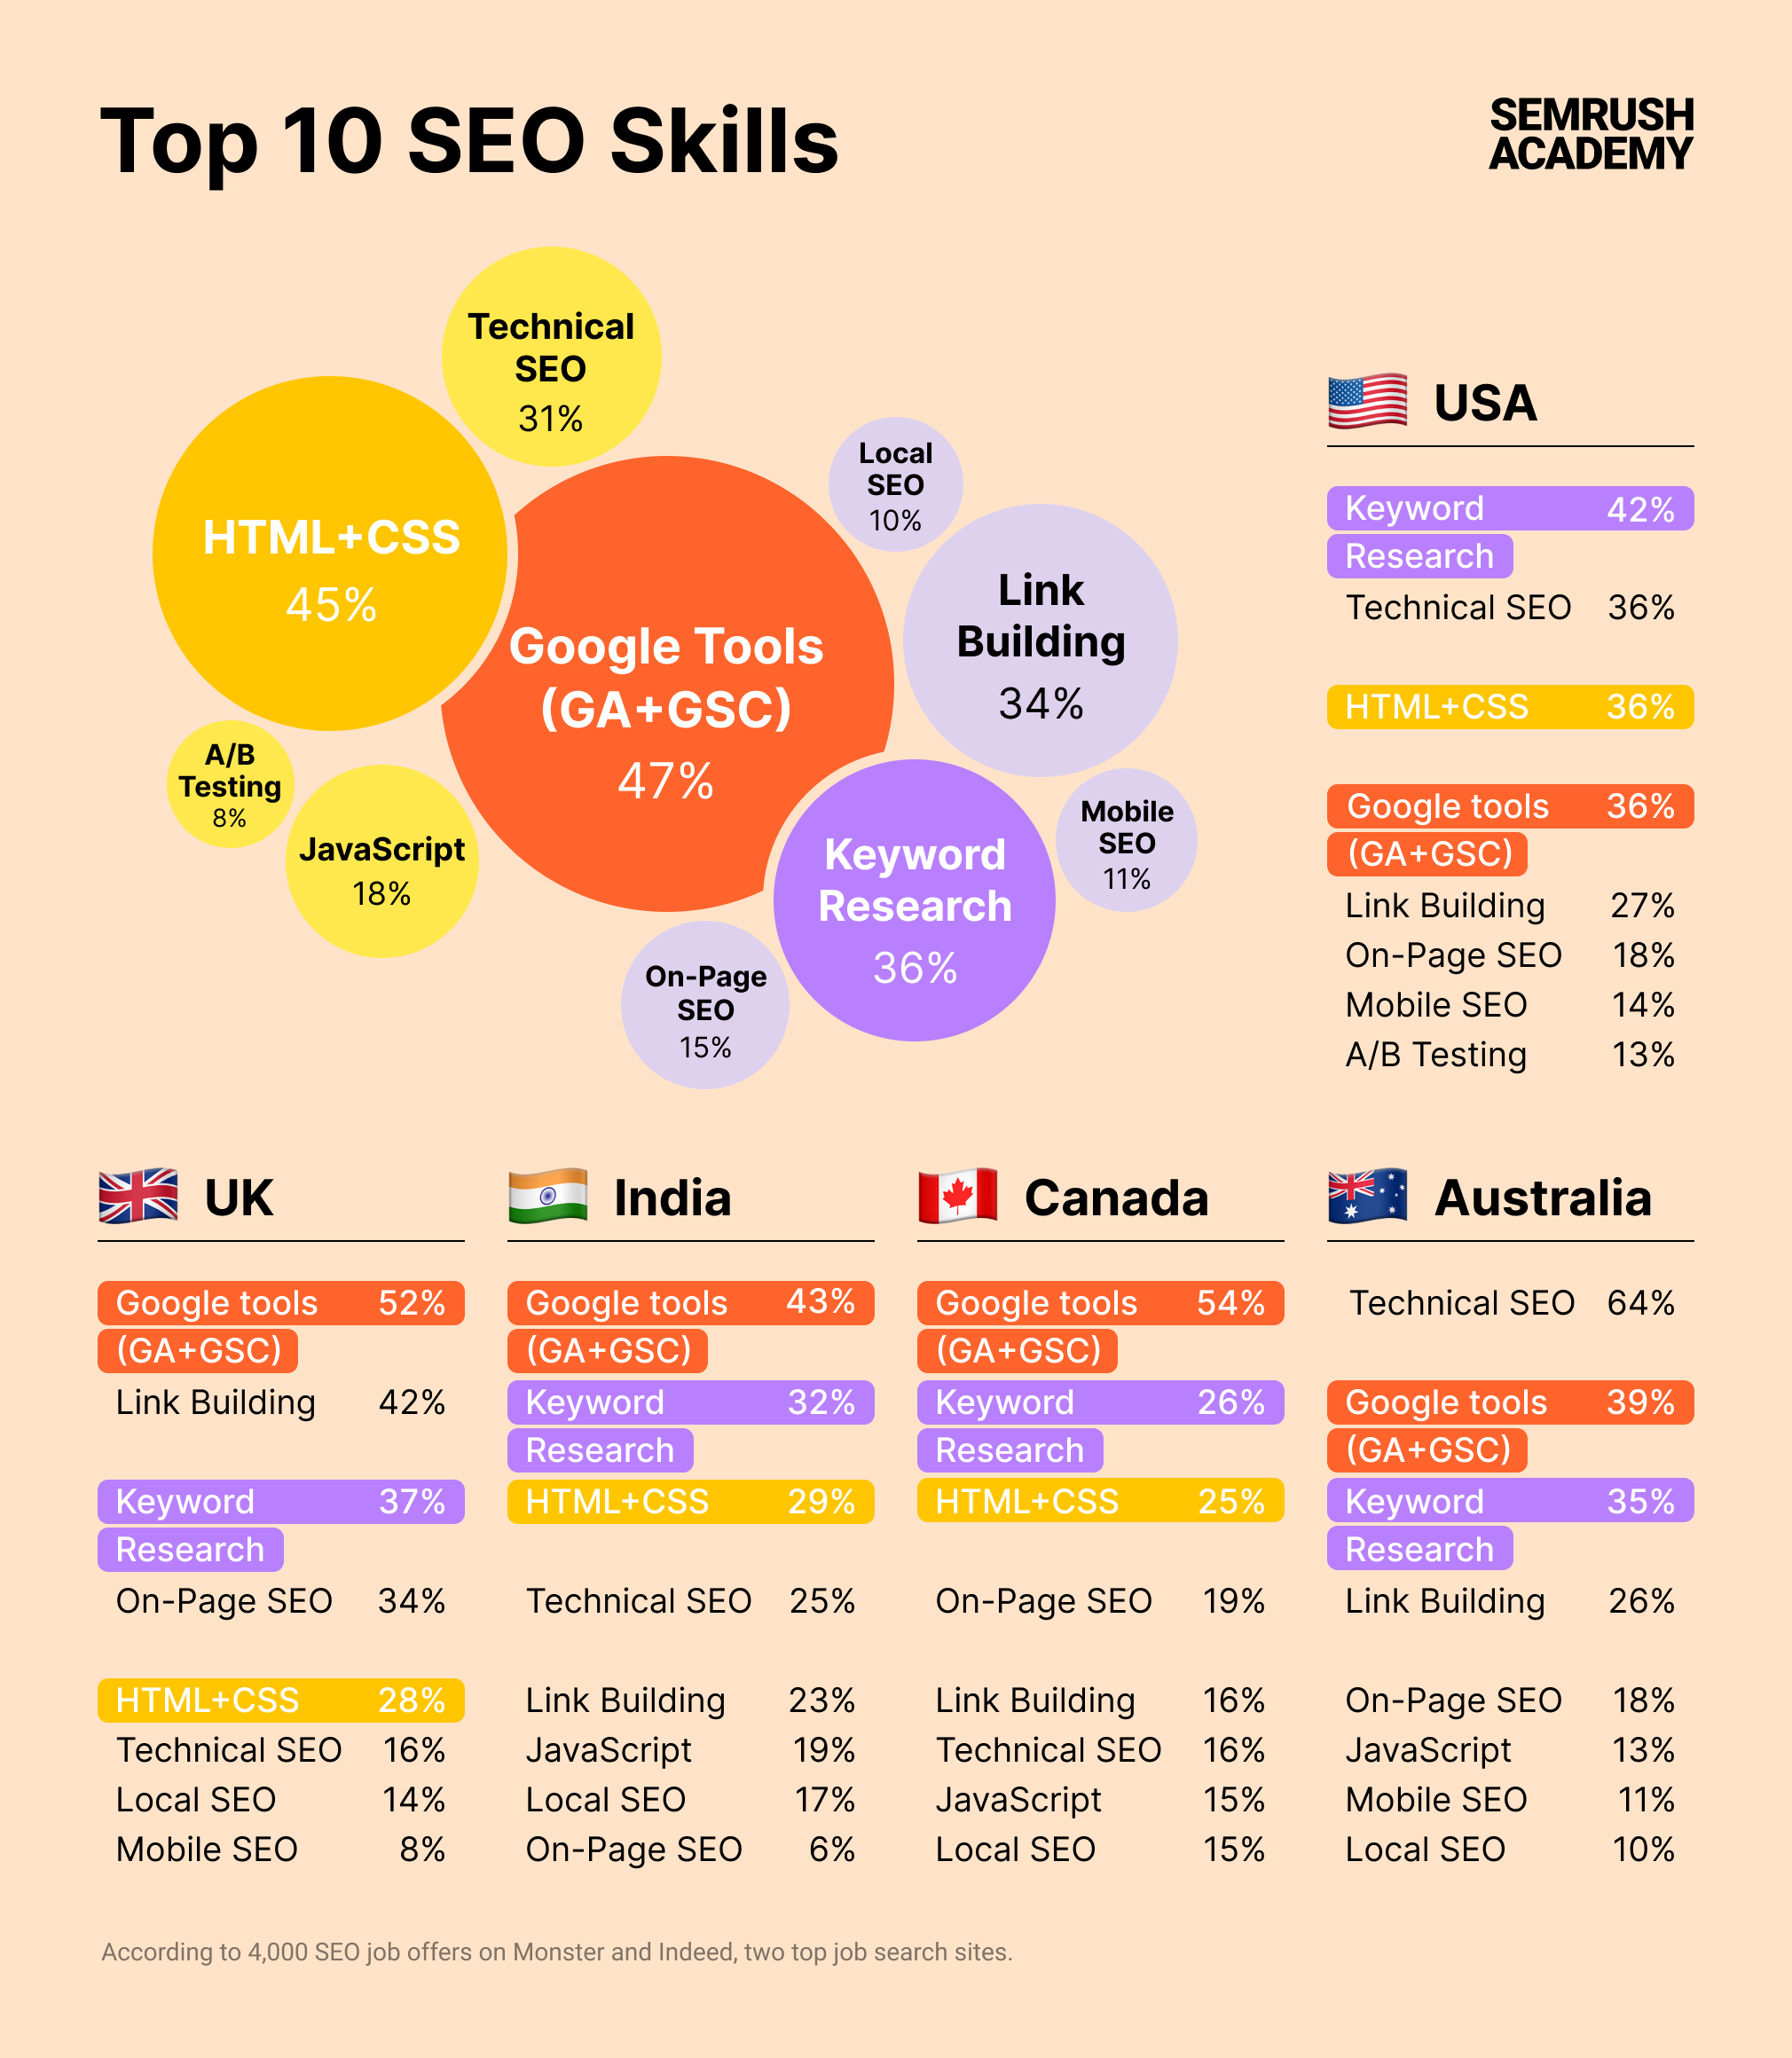 Top 10 SEO Skills Infographic